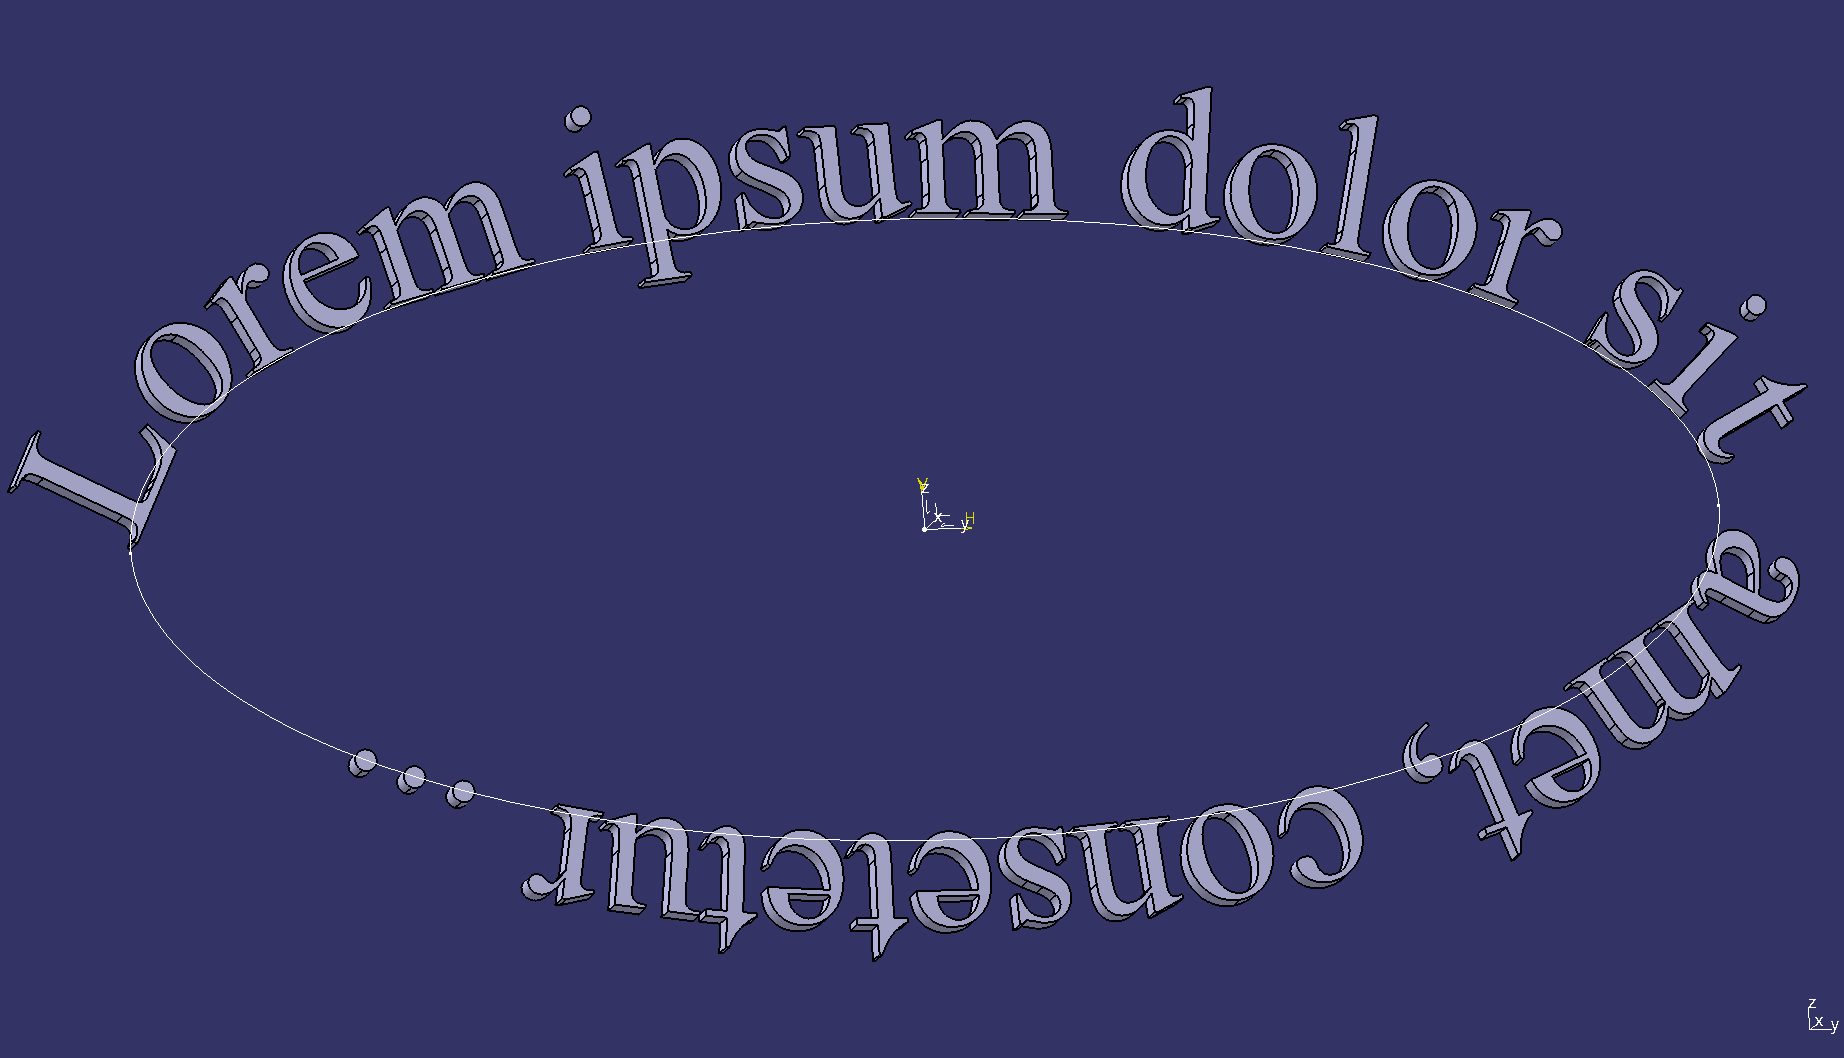 Text on ellipse